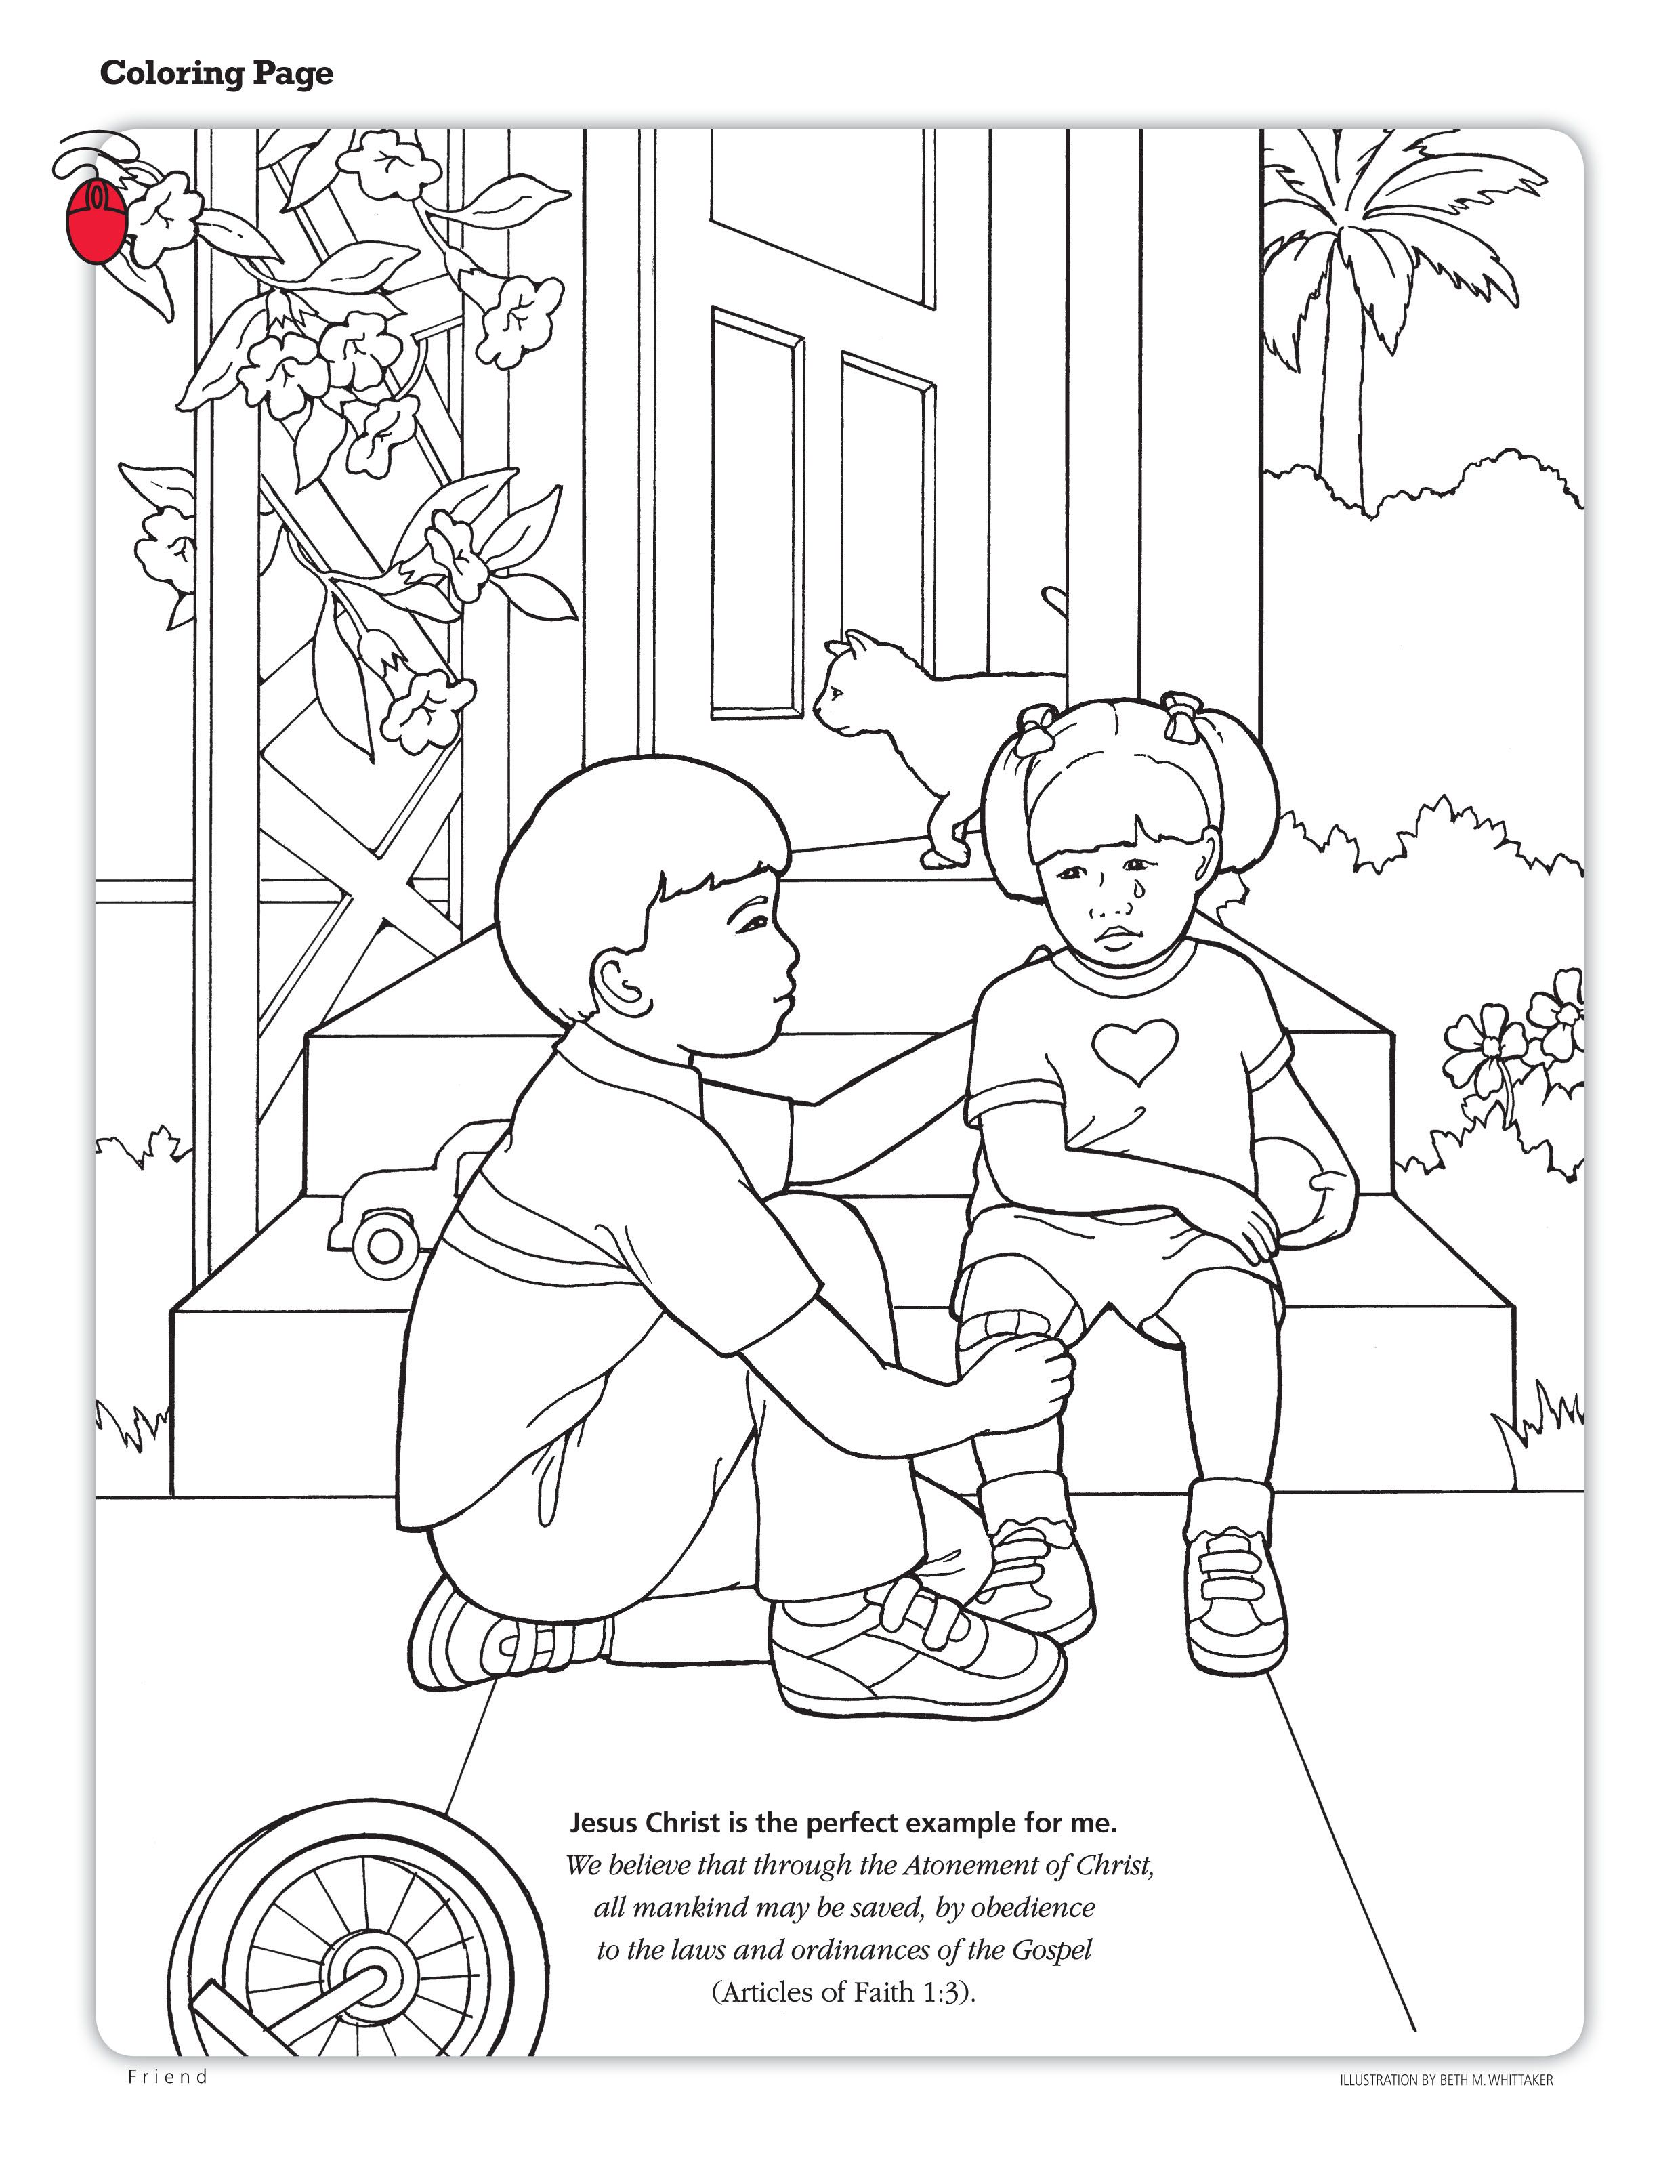 Coloring Page About The Atonement